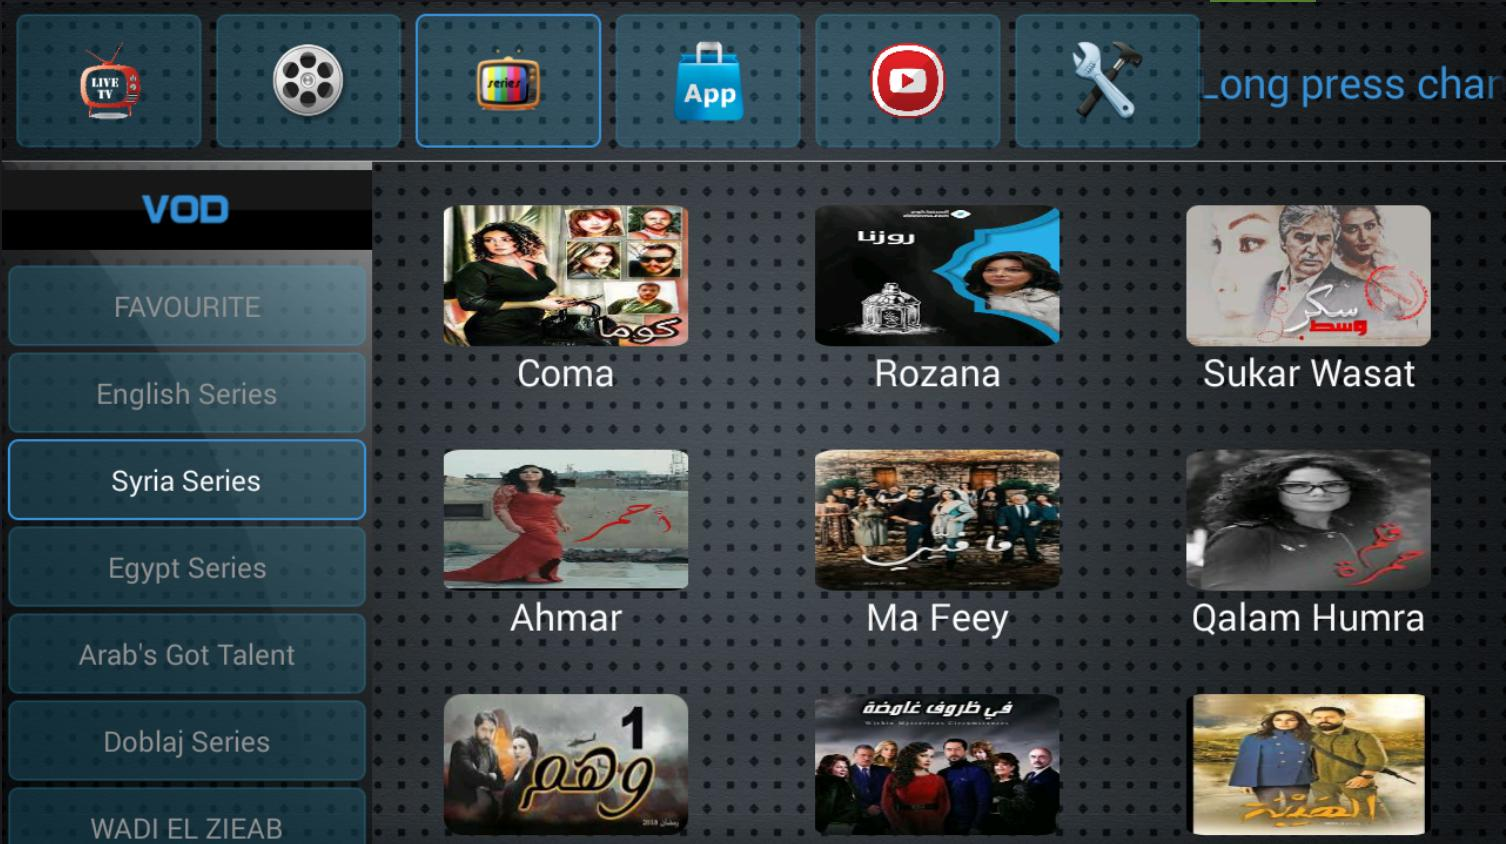 SH TV Android Box for Android - APK Download